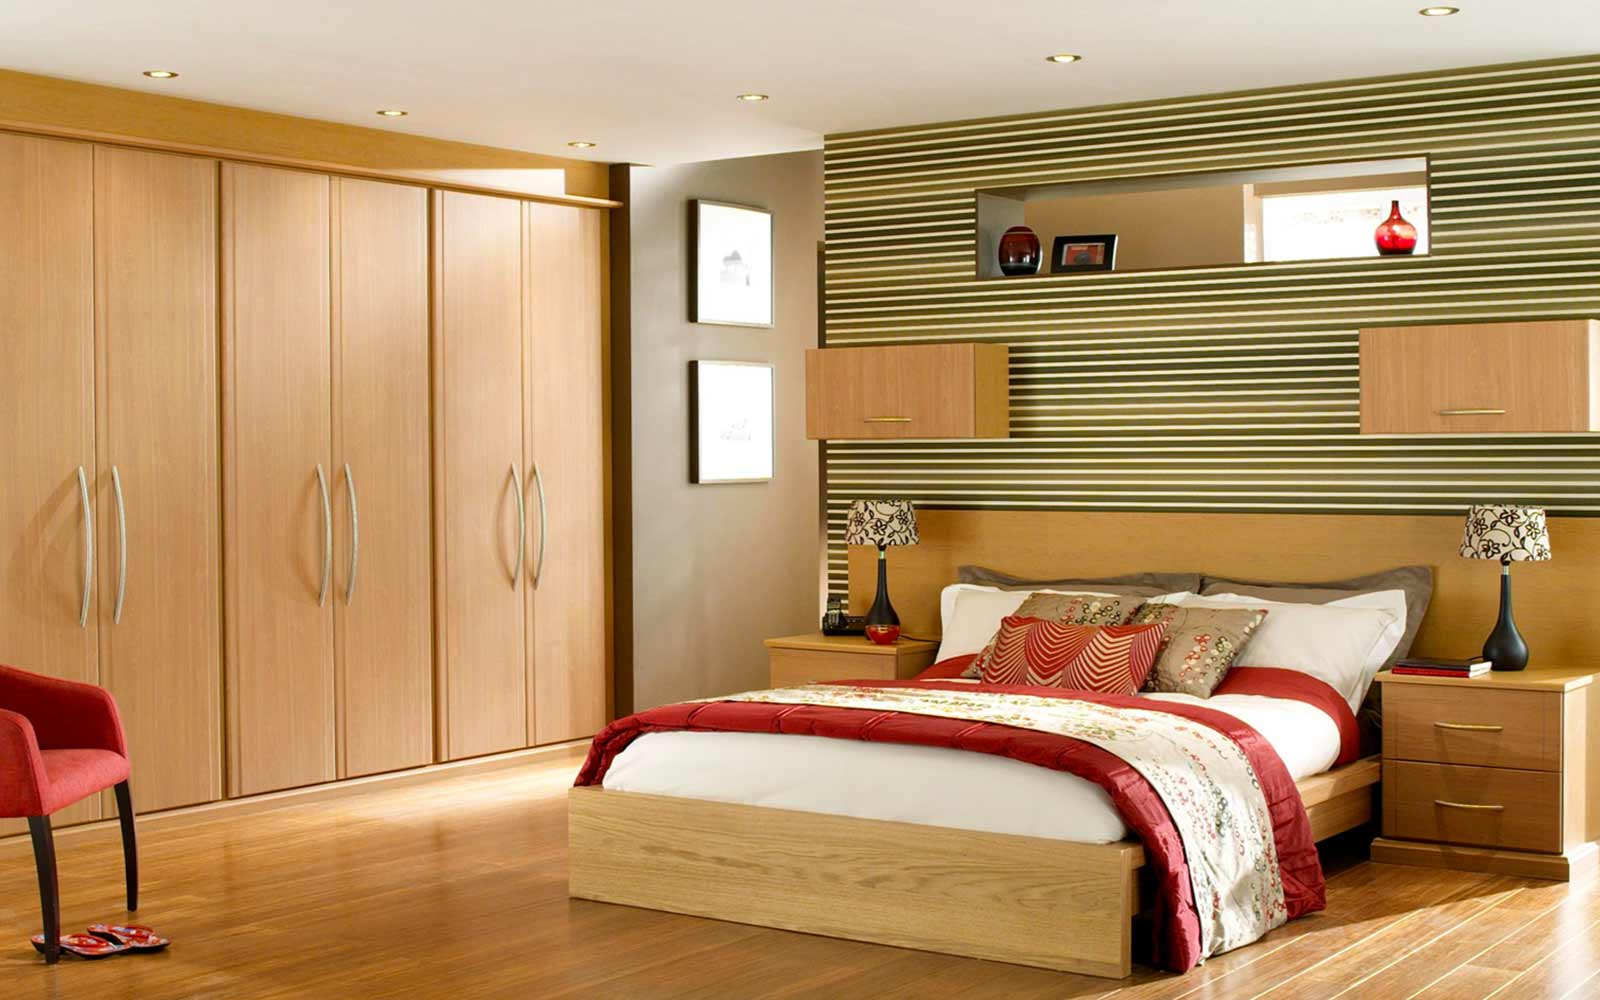 35 images of wardrobe designs for bedrooms - Bed design pics ...